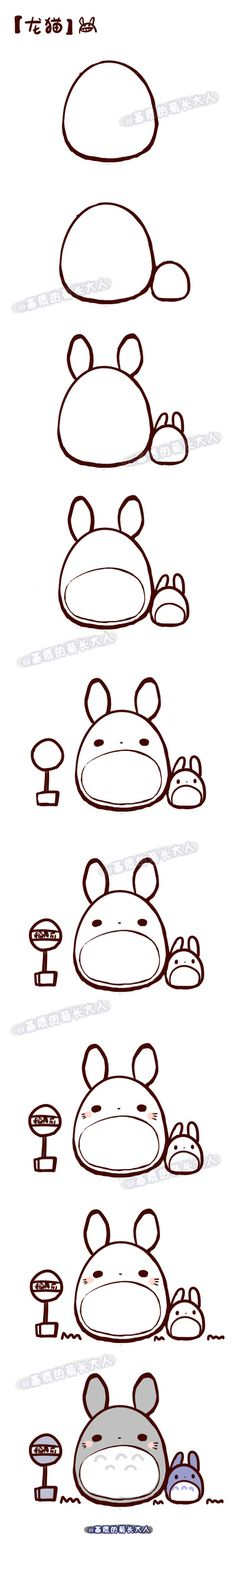 Totoro Doodle Cheat Sheet - Picture only, bad link. Kawaii Drawings, Doodle Drawings, Easy Drawings, Animal Drawings, Doodle Art, Doodle Illustrations, Kawaii Doodles, Cute Doodles, Kawaii Art